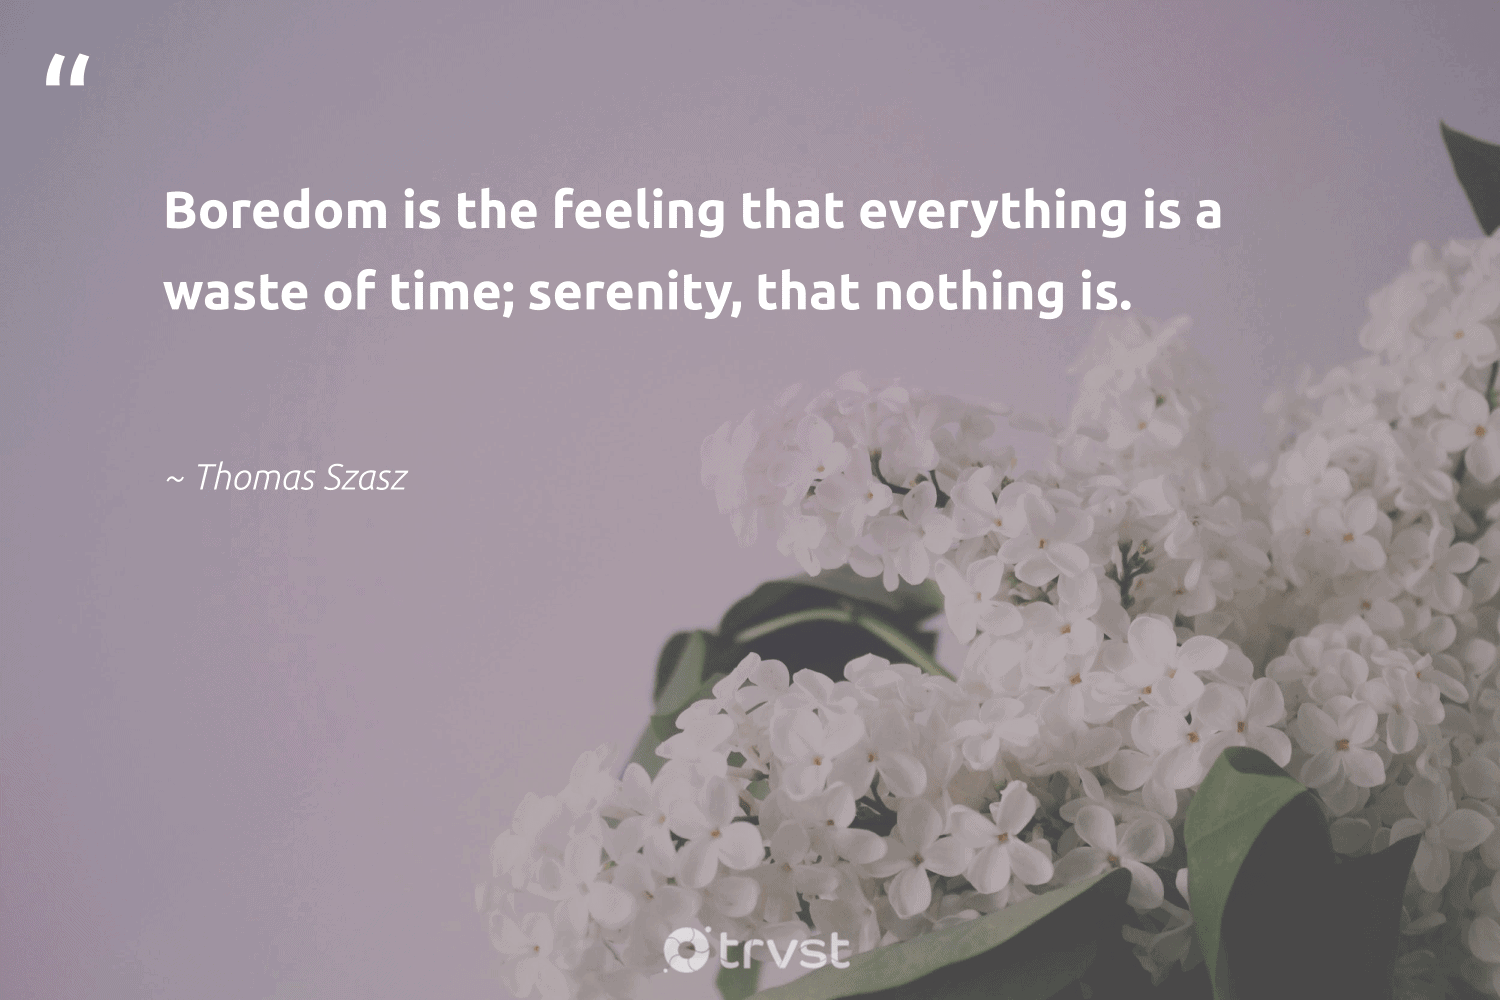 """""""Boredom is the feeling that everything is a waste of time; serenity, that nothing is.""""  - Thomas Szasz #trvst #quotes #waste #begreat #impact #mindset #dosomething #nevergiveup #socialimpact #togetherwecan #dotherightthing #changemakers"""